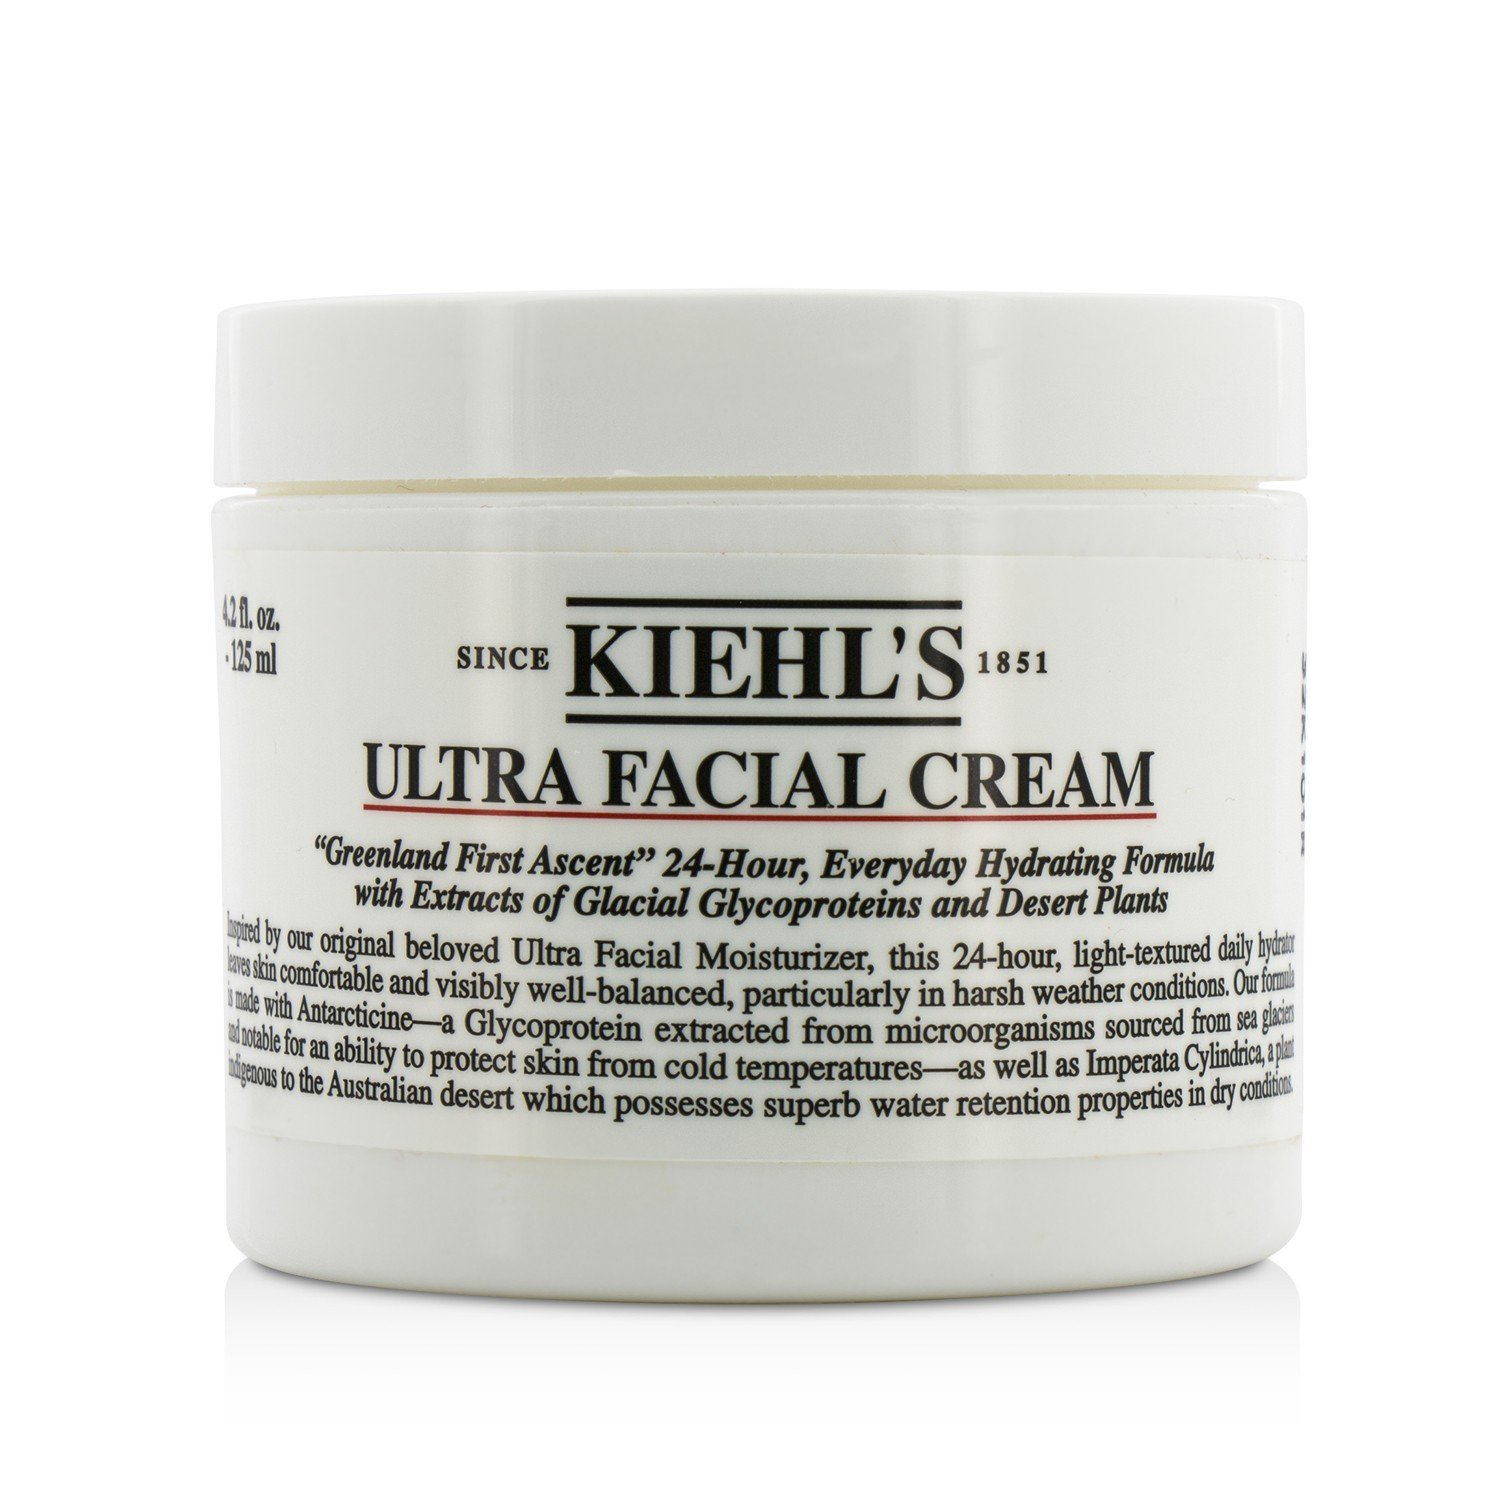 Save money Kiehl's Ultra Facial Cream Ounce Excellent Unisex for 4.2